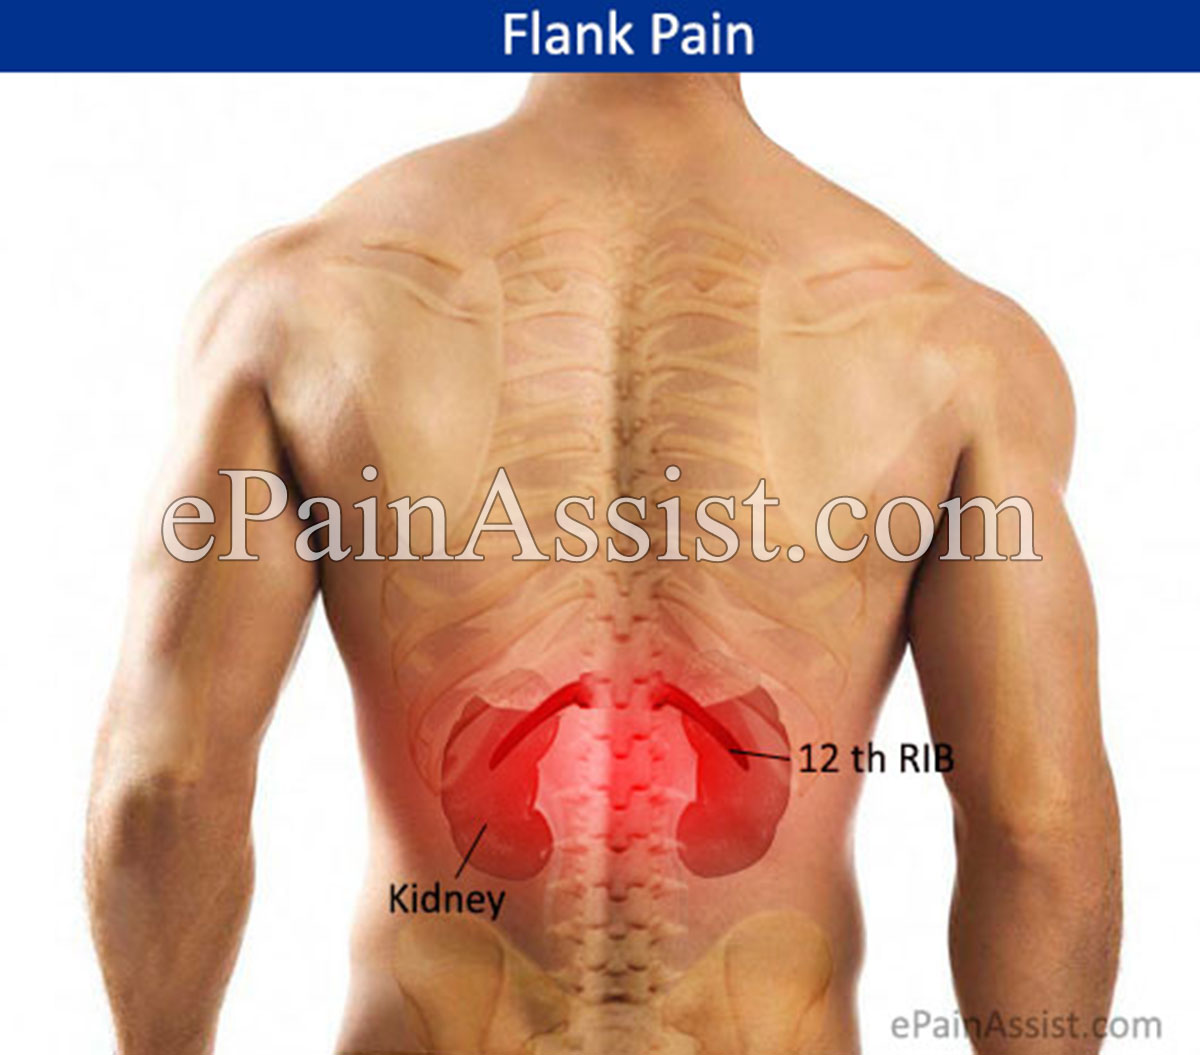 what can cause pain in the flank region?, Skeleton